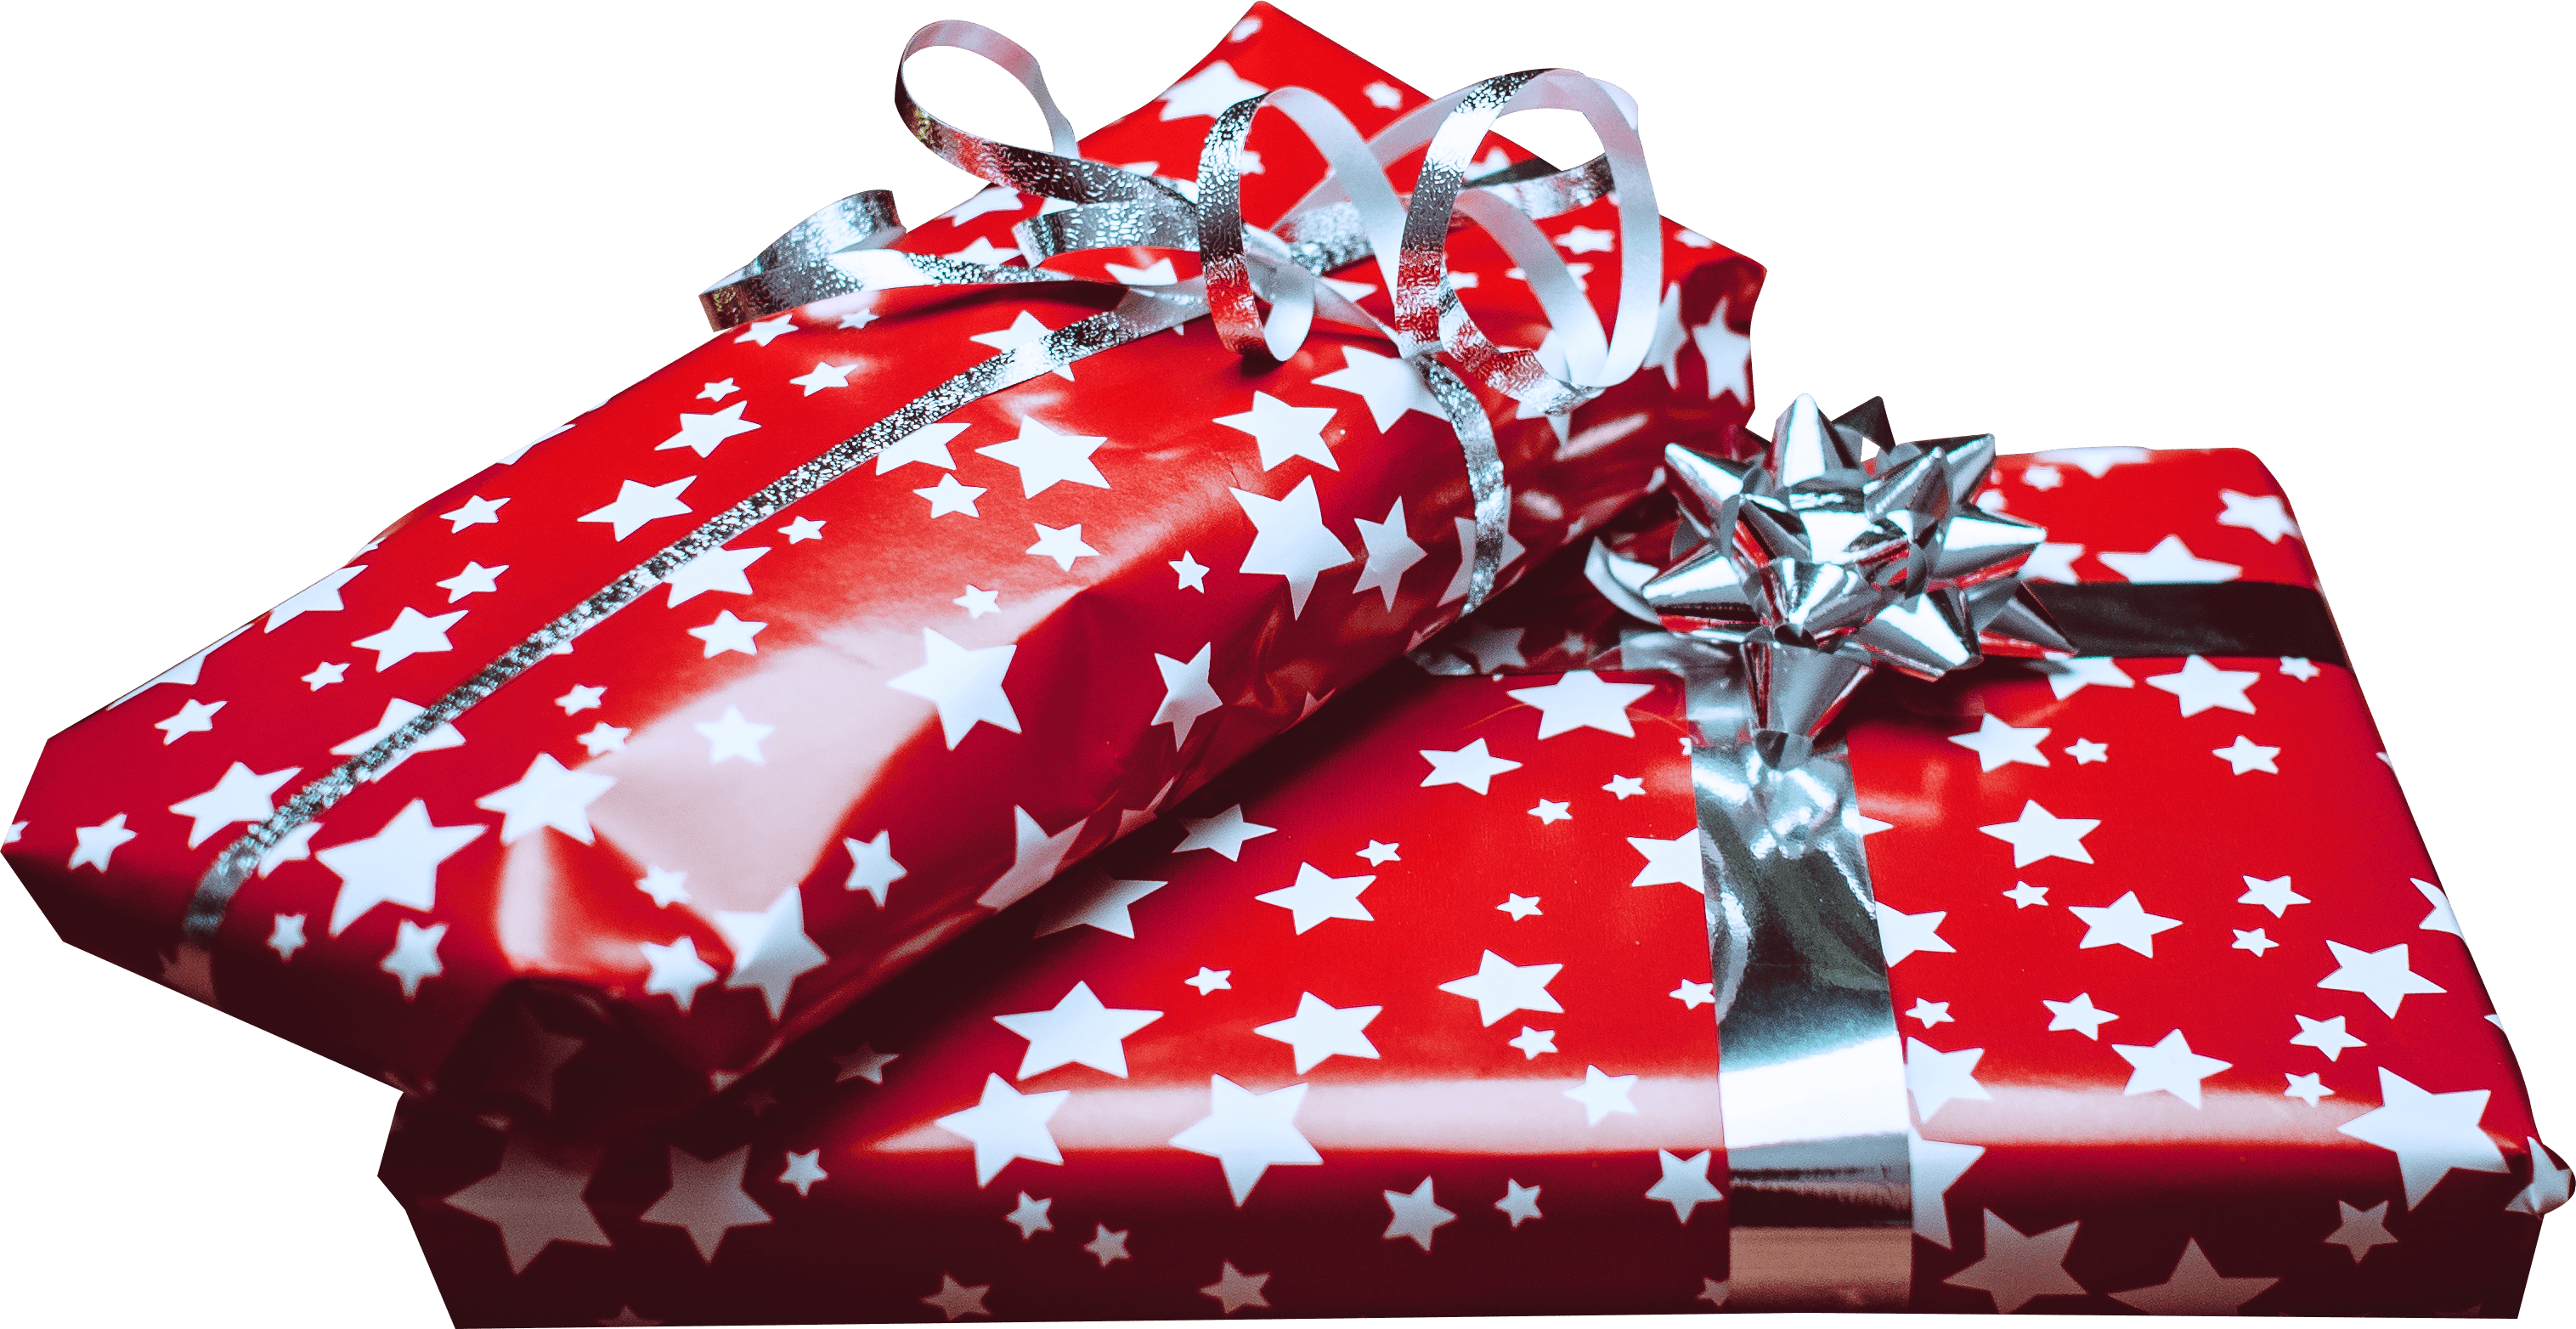 Christmas Gifts Red and Stars transparent PNG - StickPNG